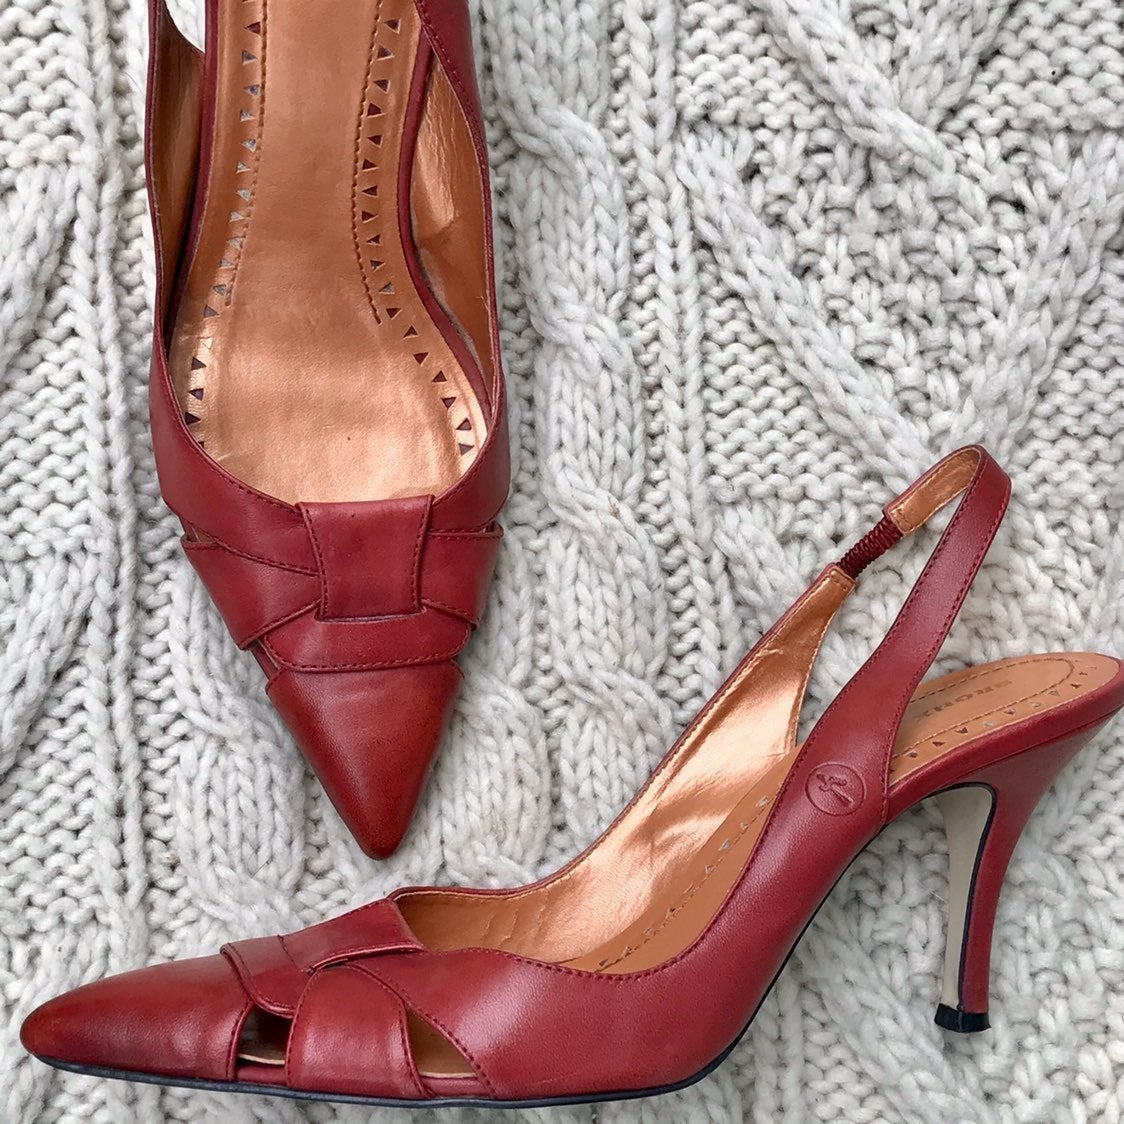 BRONX Red Leather Slingback Pumps - 39